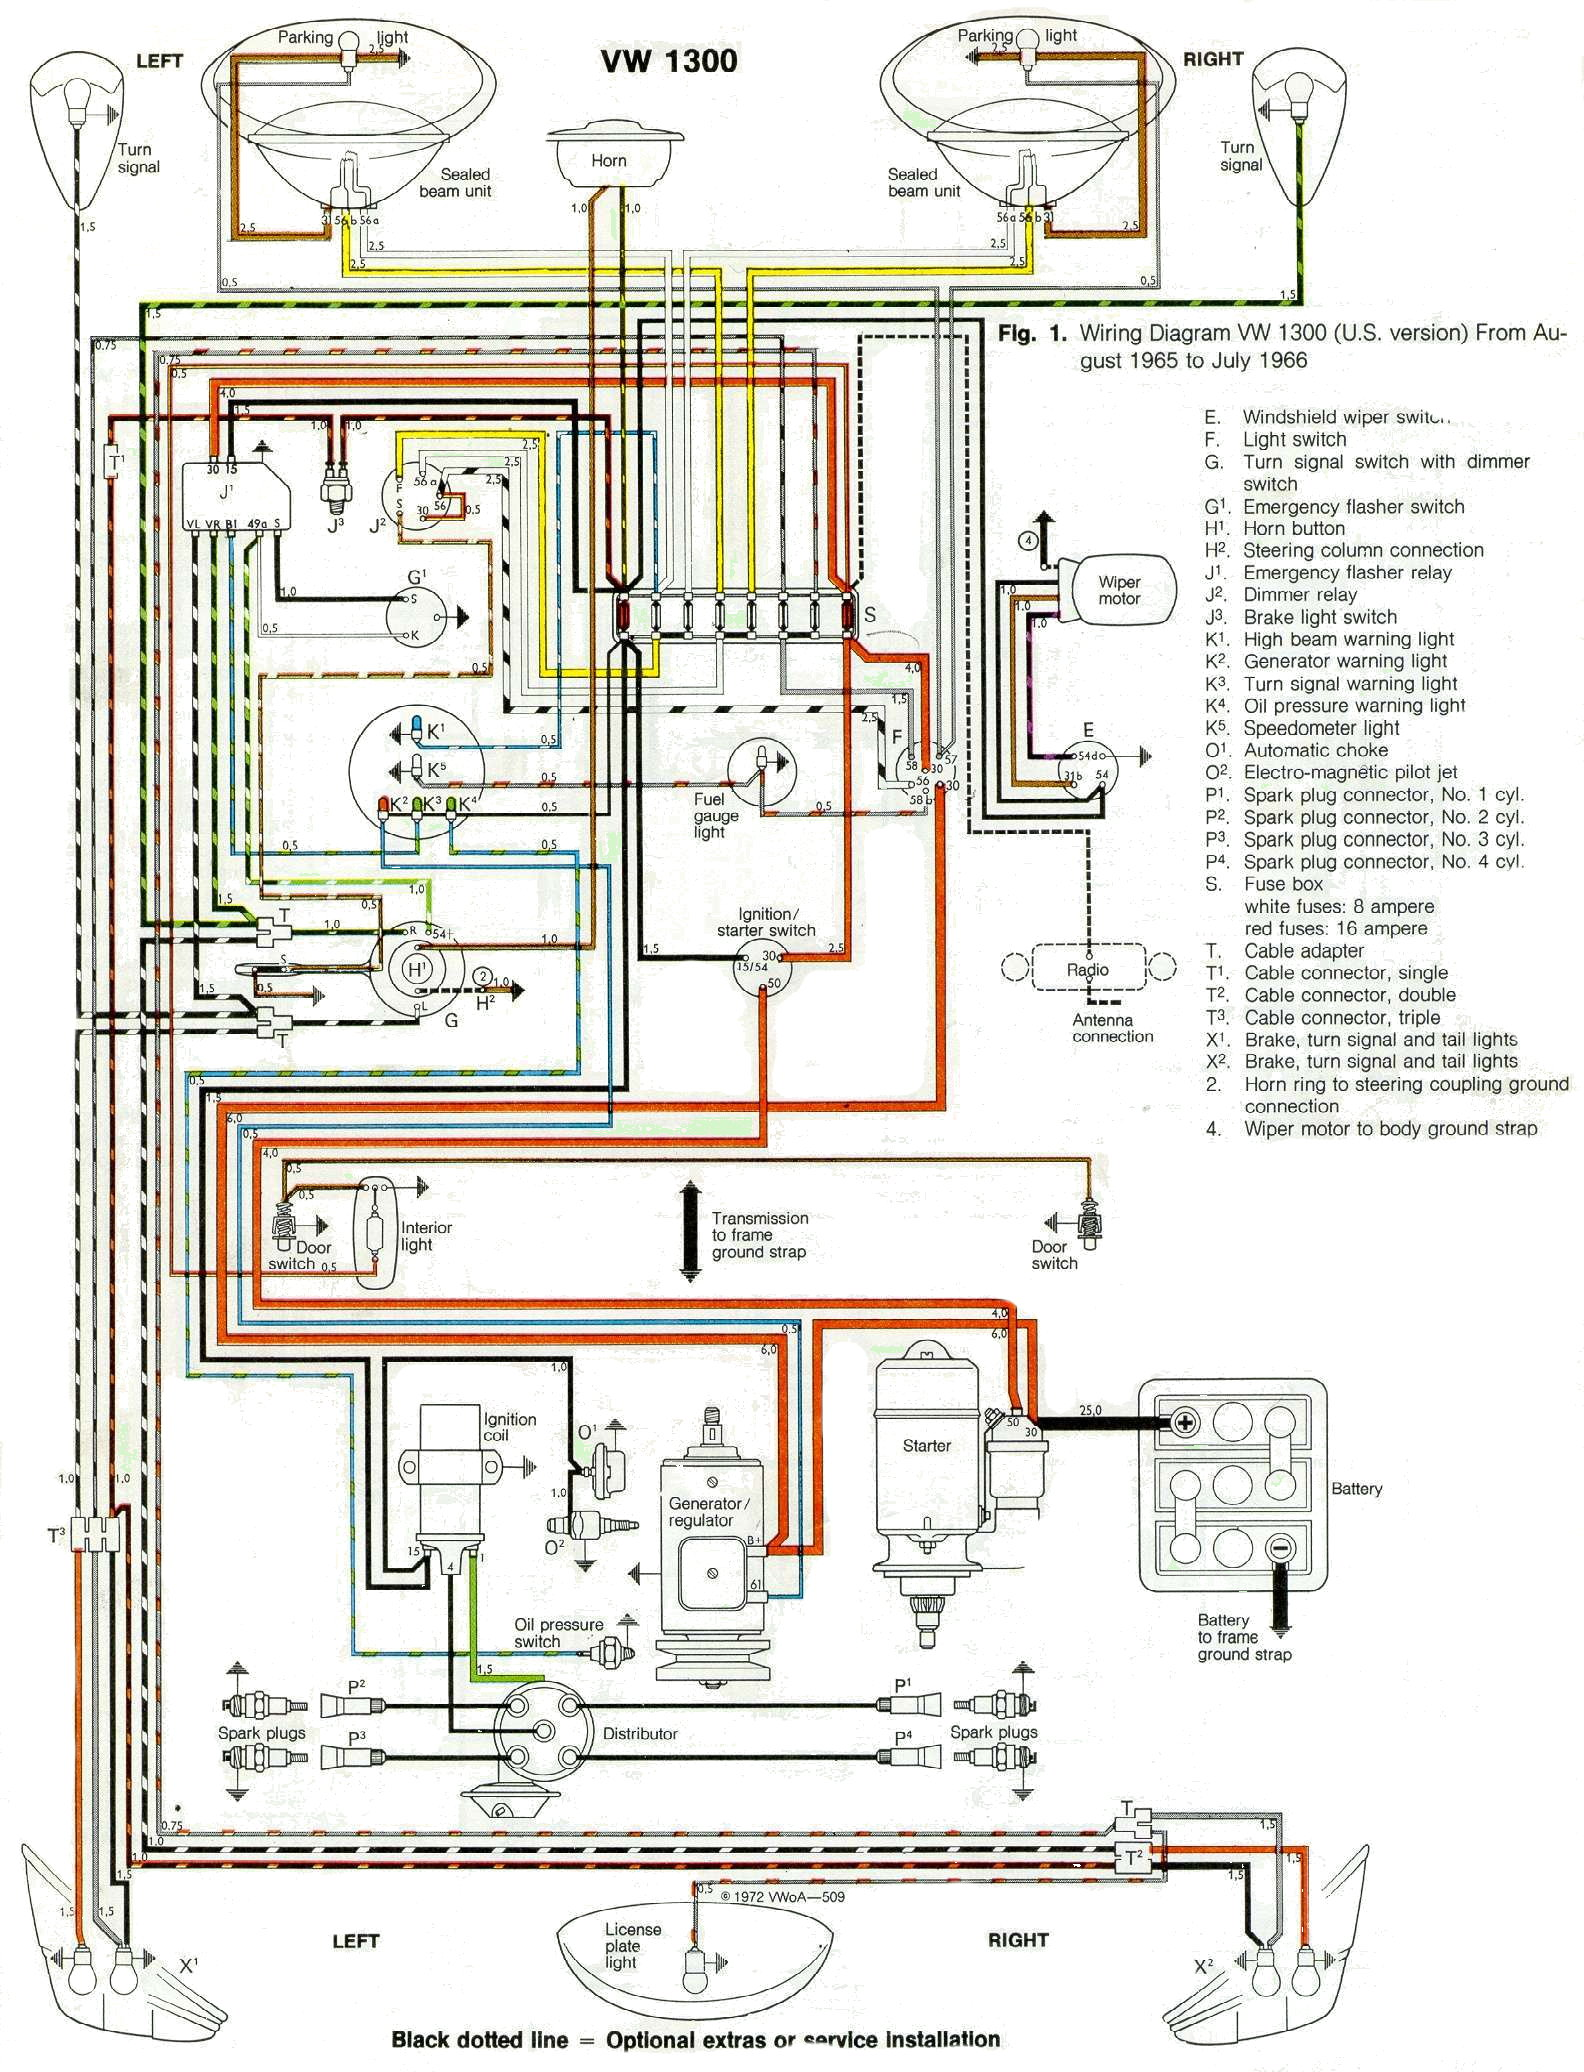 1966 Wiring 67 vw bus wiring harness 71 vw wiring harness \u2022 wiring diagrams Wiring Harness Diagram at honlapkeszites.co